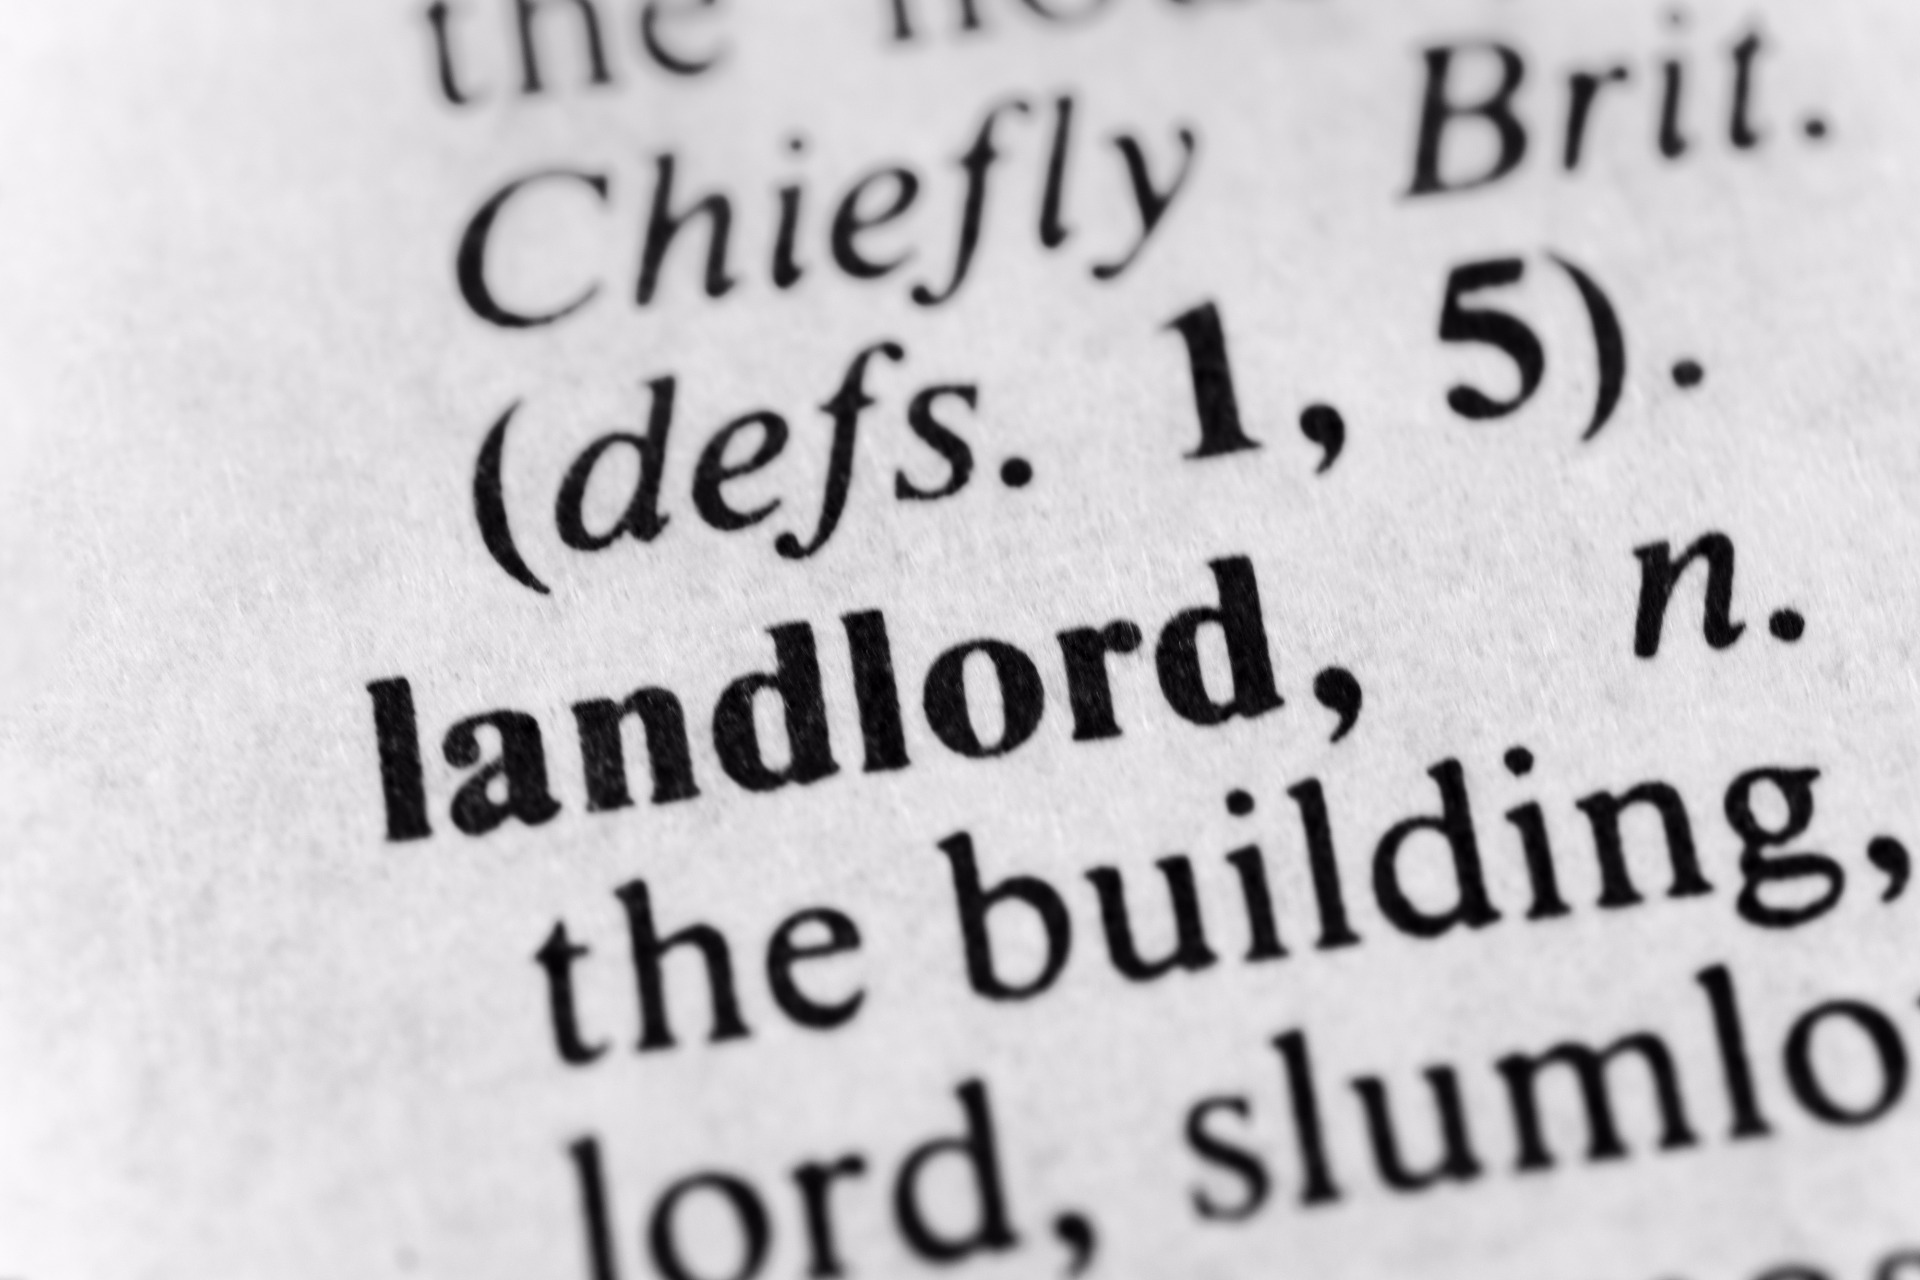 Rogue Landlords